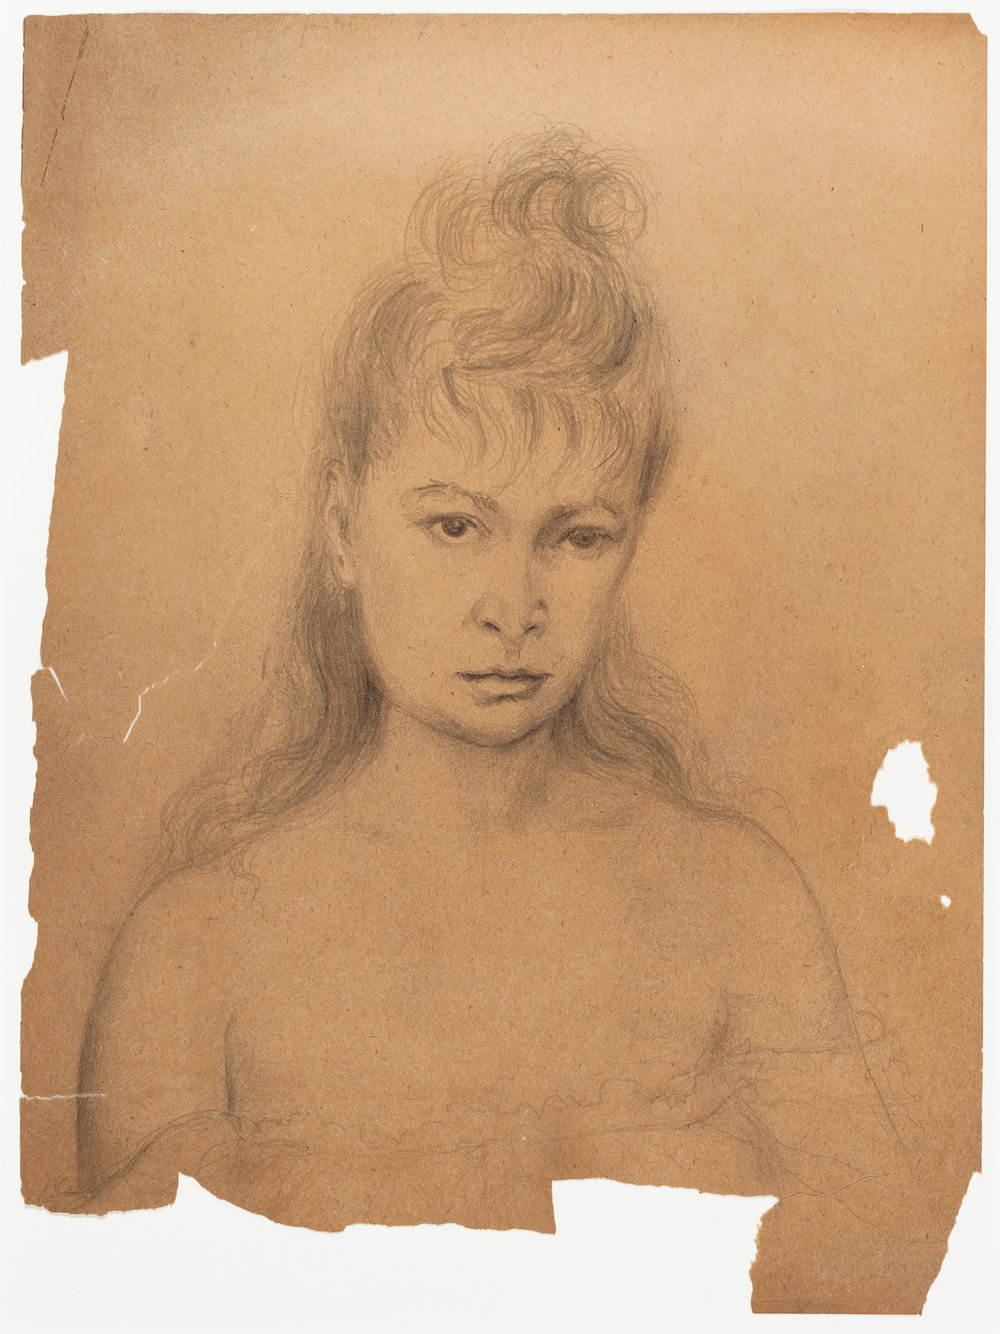 Hedda Sterne, Self-Portrait, c. 1940, Pencil on paper, 12 x 9 in.